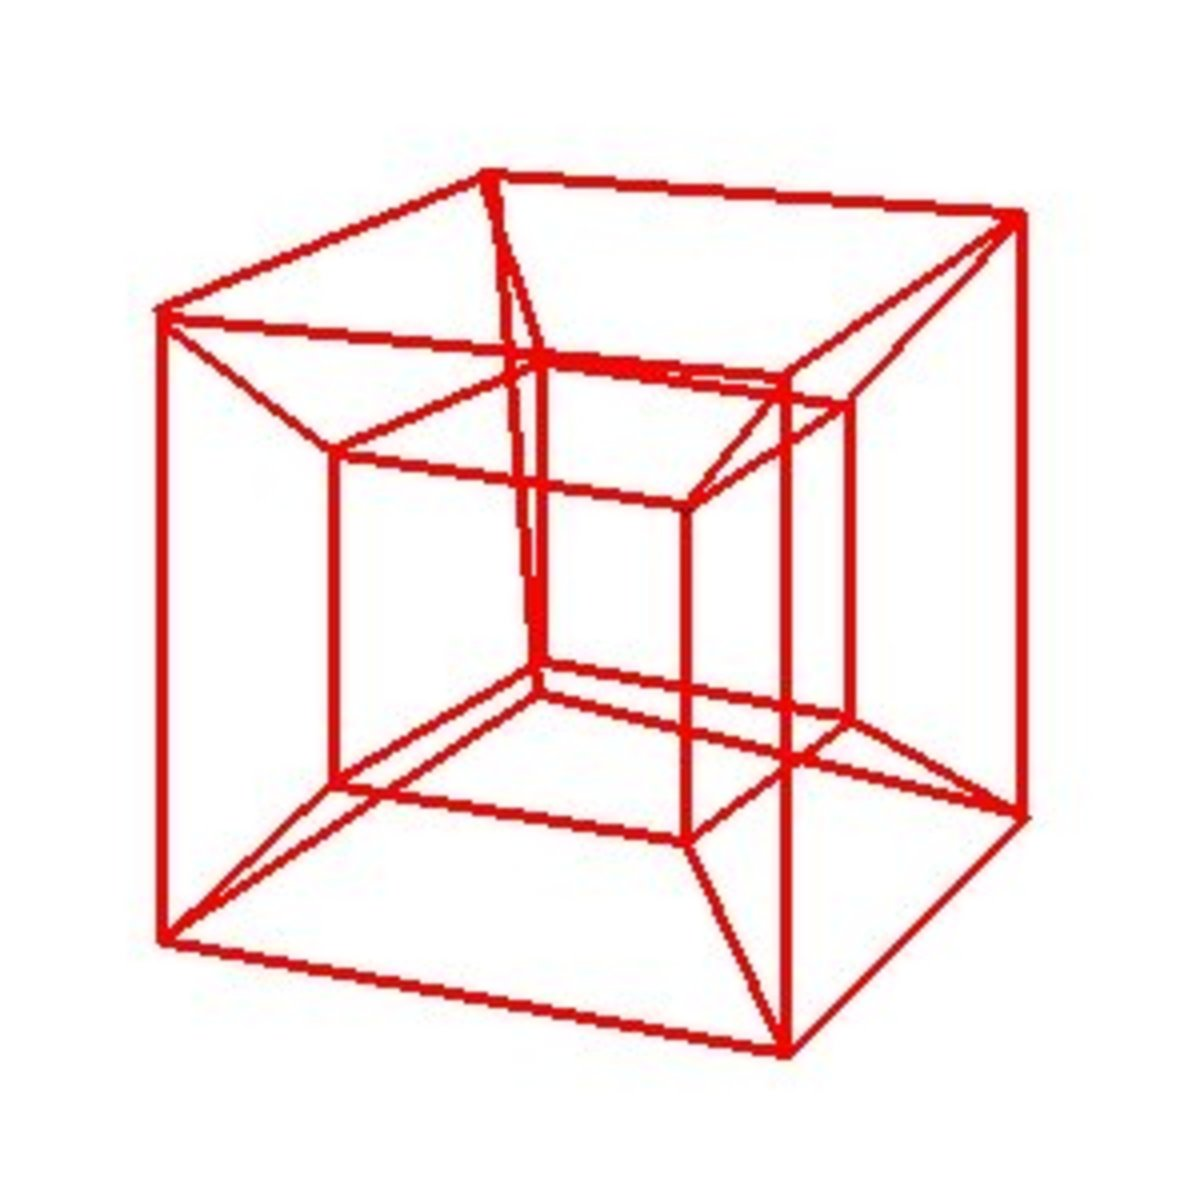 """""""In geometry, the tesseract, also called an 8-cell or regular octachoron or cubic prism, is the four-dimensional analog of the cube."""""""